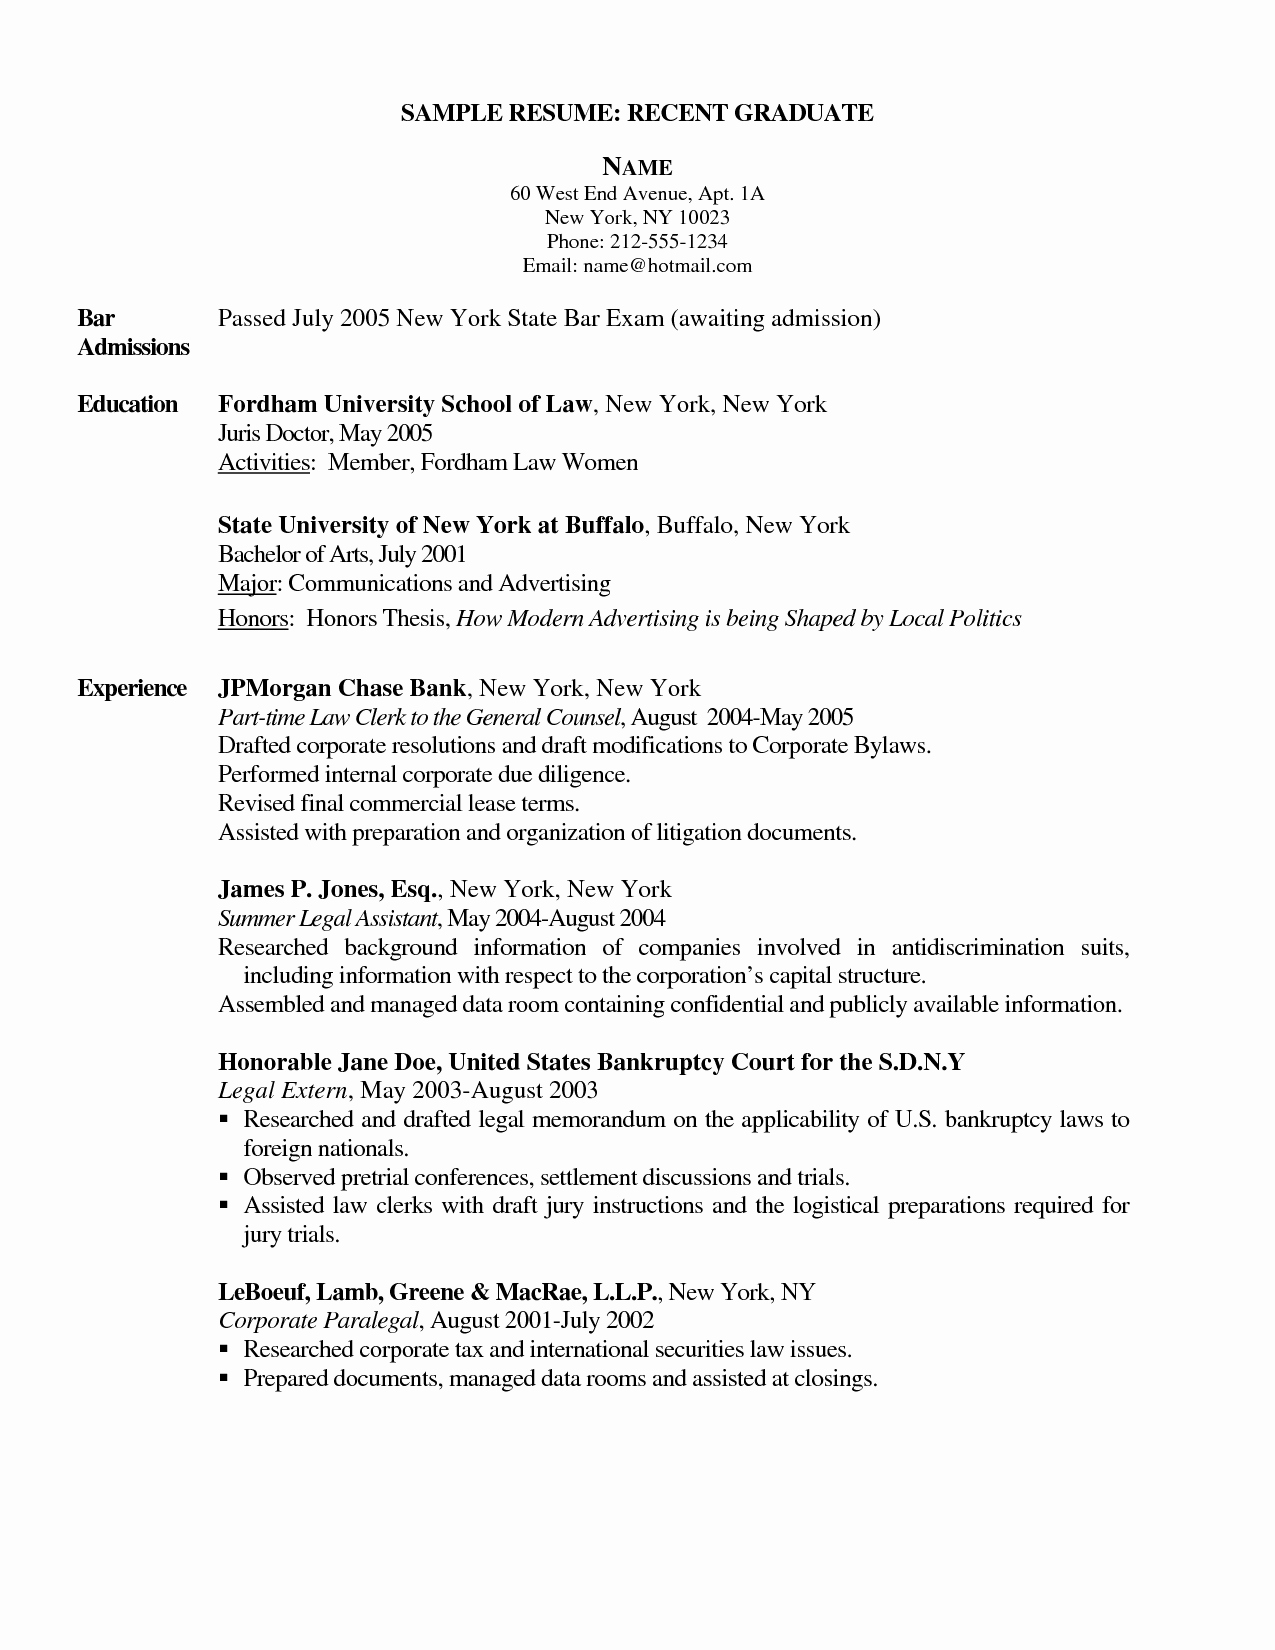 Graduate Nurse Resume Template Free Fresh New Graduate Nurse Resume Sidemcicek